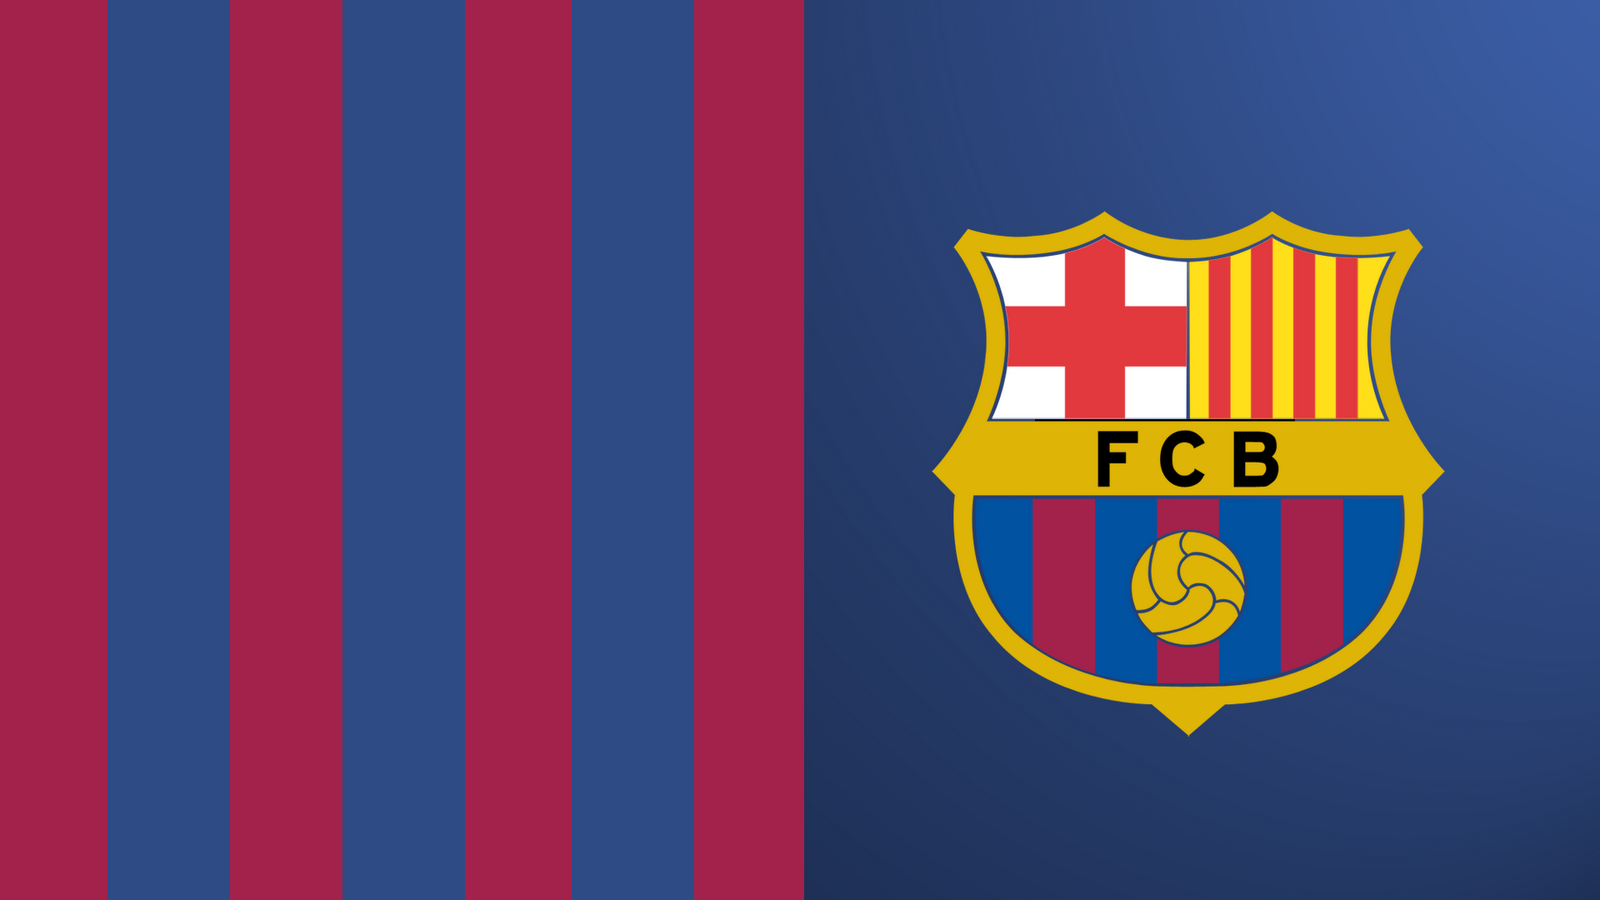 Amazing Wallpaper Fc Barcelona For Iphone FFG1 - Fcb HD PNG